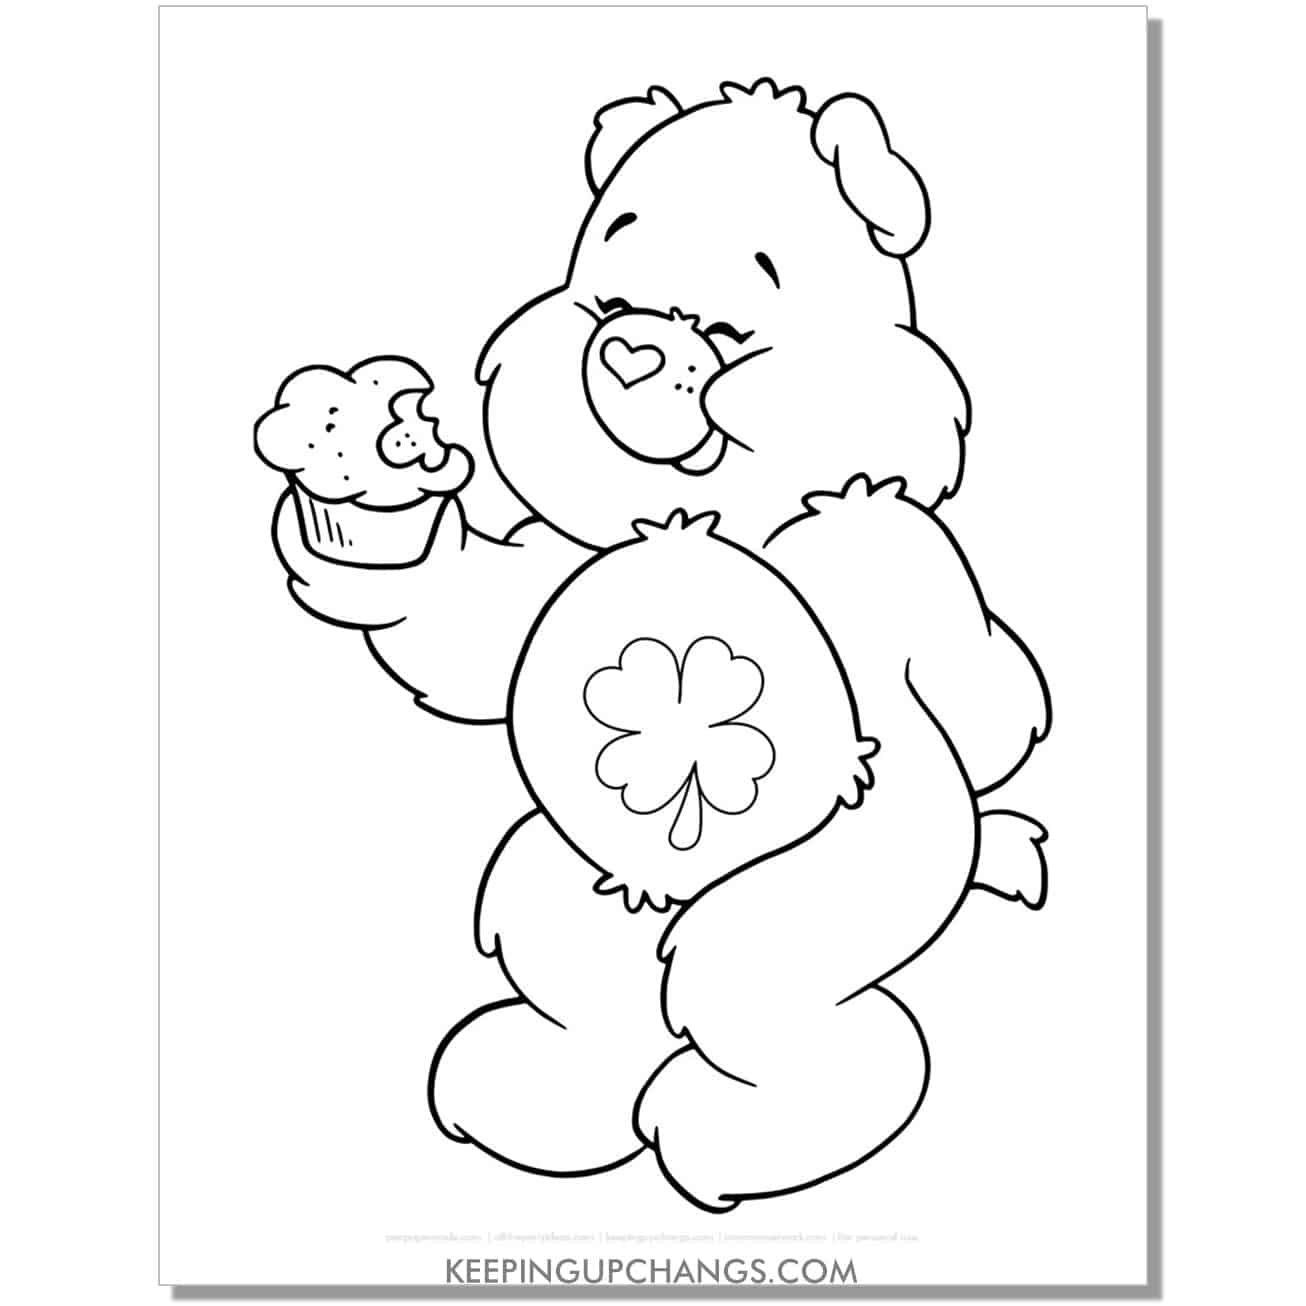 lucky care bear eating cupcake coloring page.